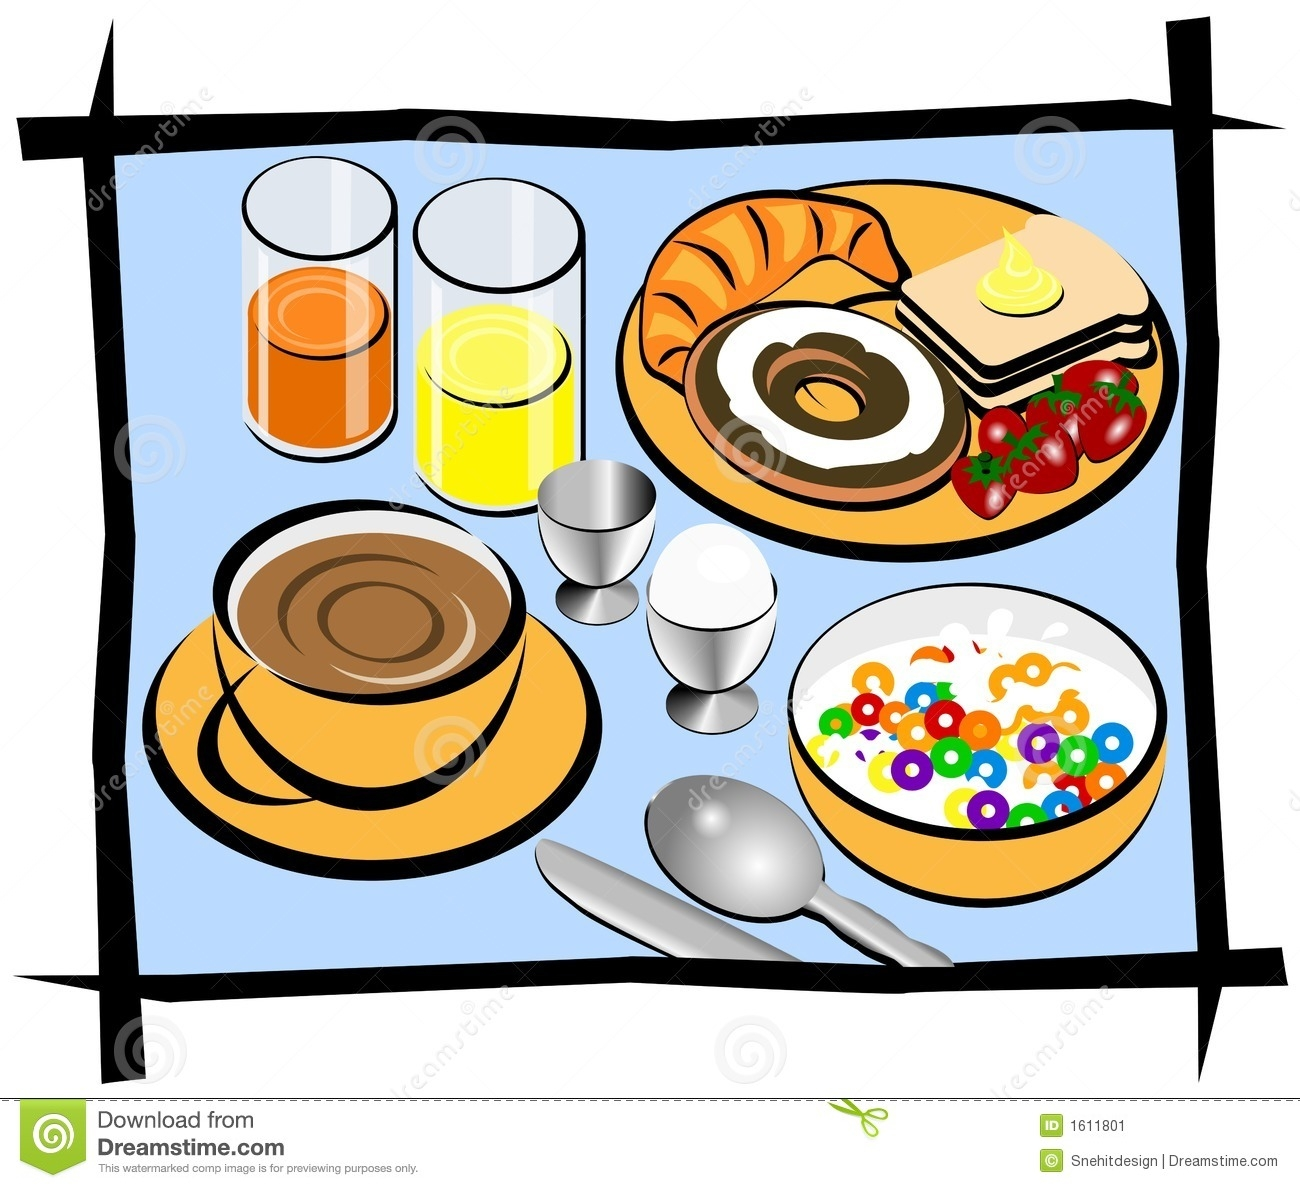 Brunch clipart breakfast. New gallery digital collection